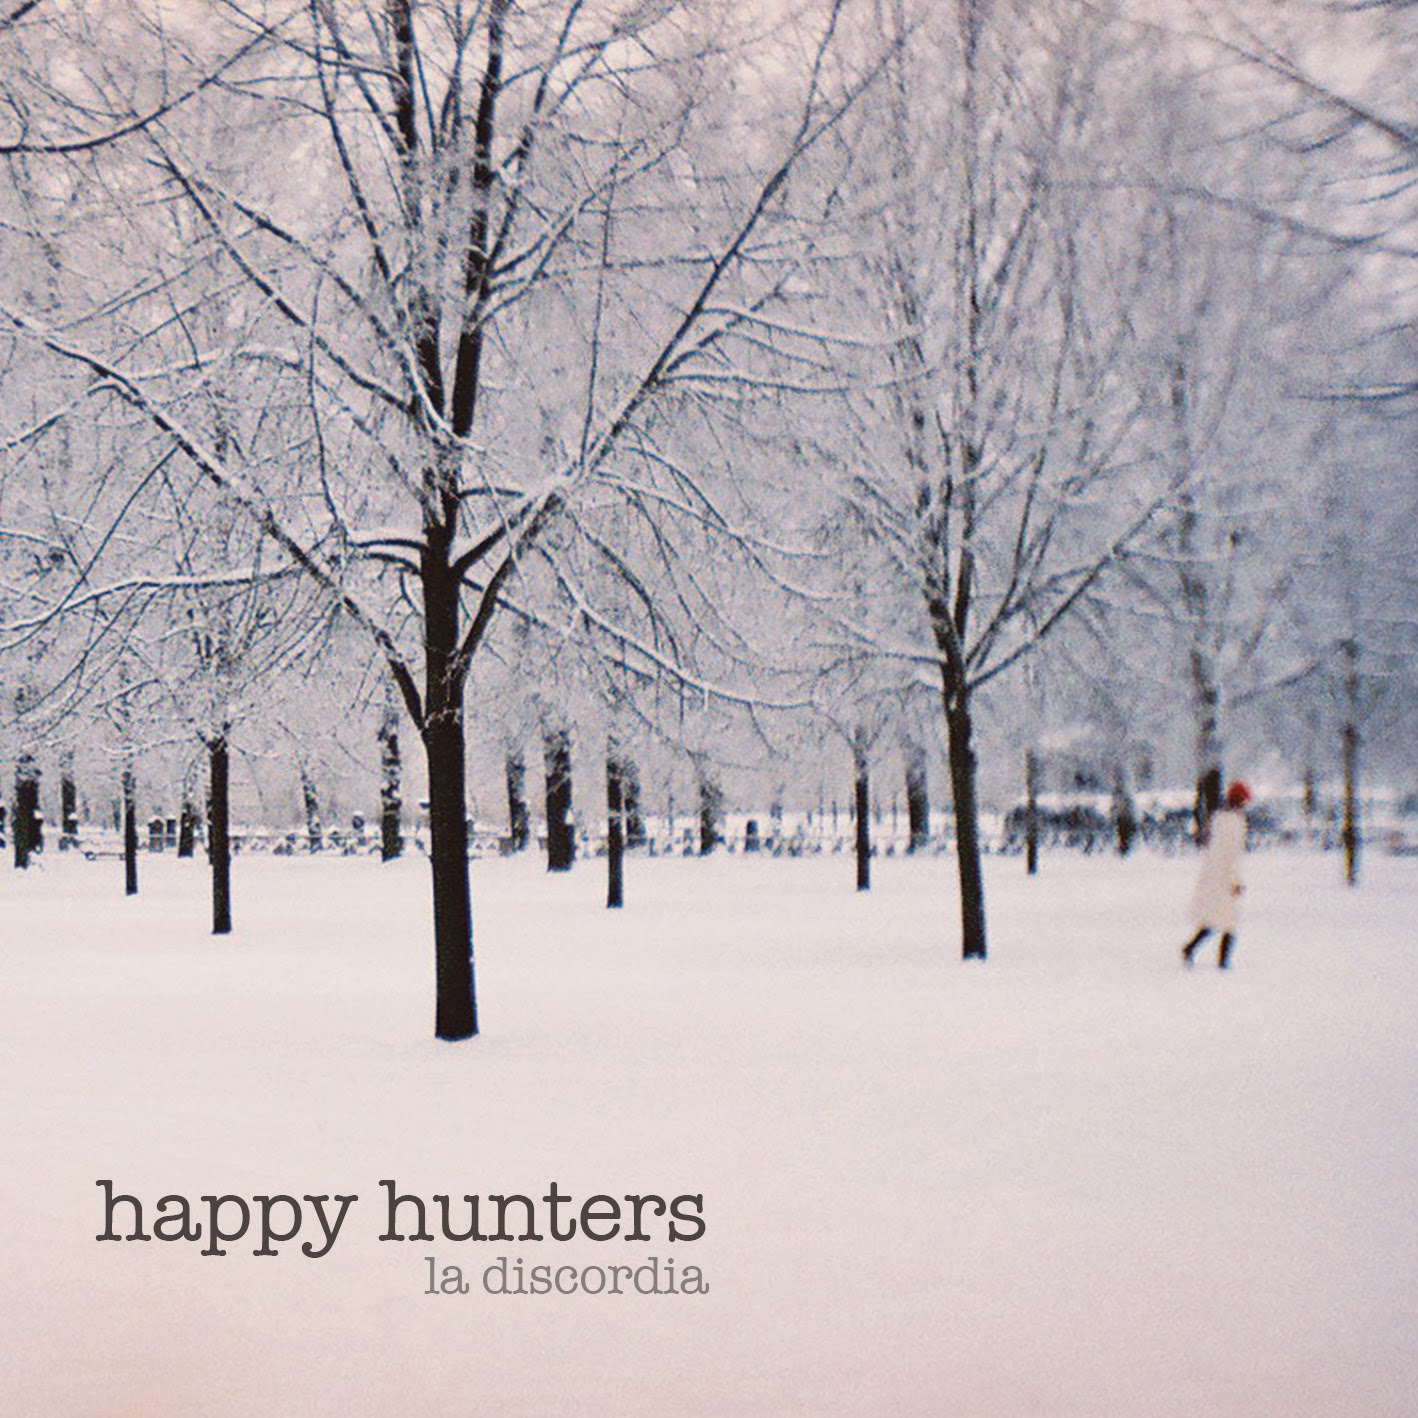 The Happy Hunters La discordia